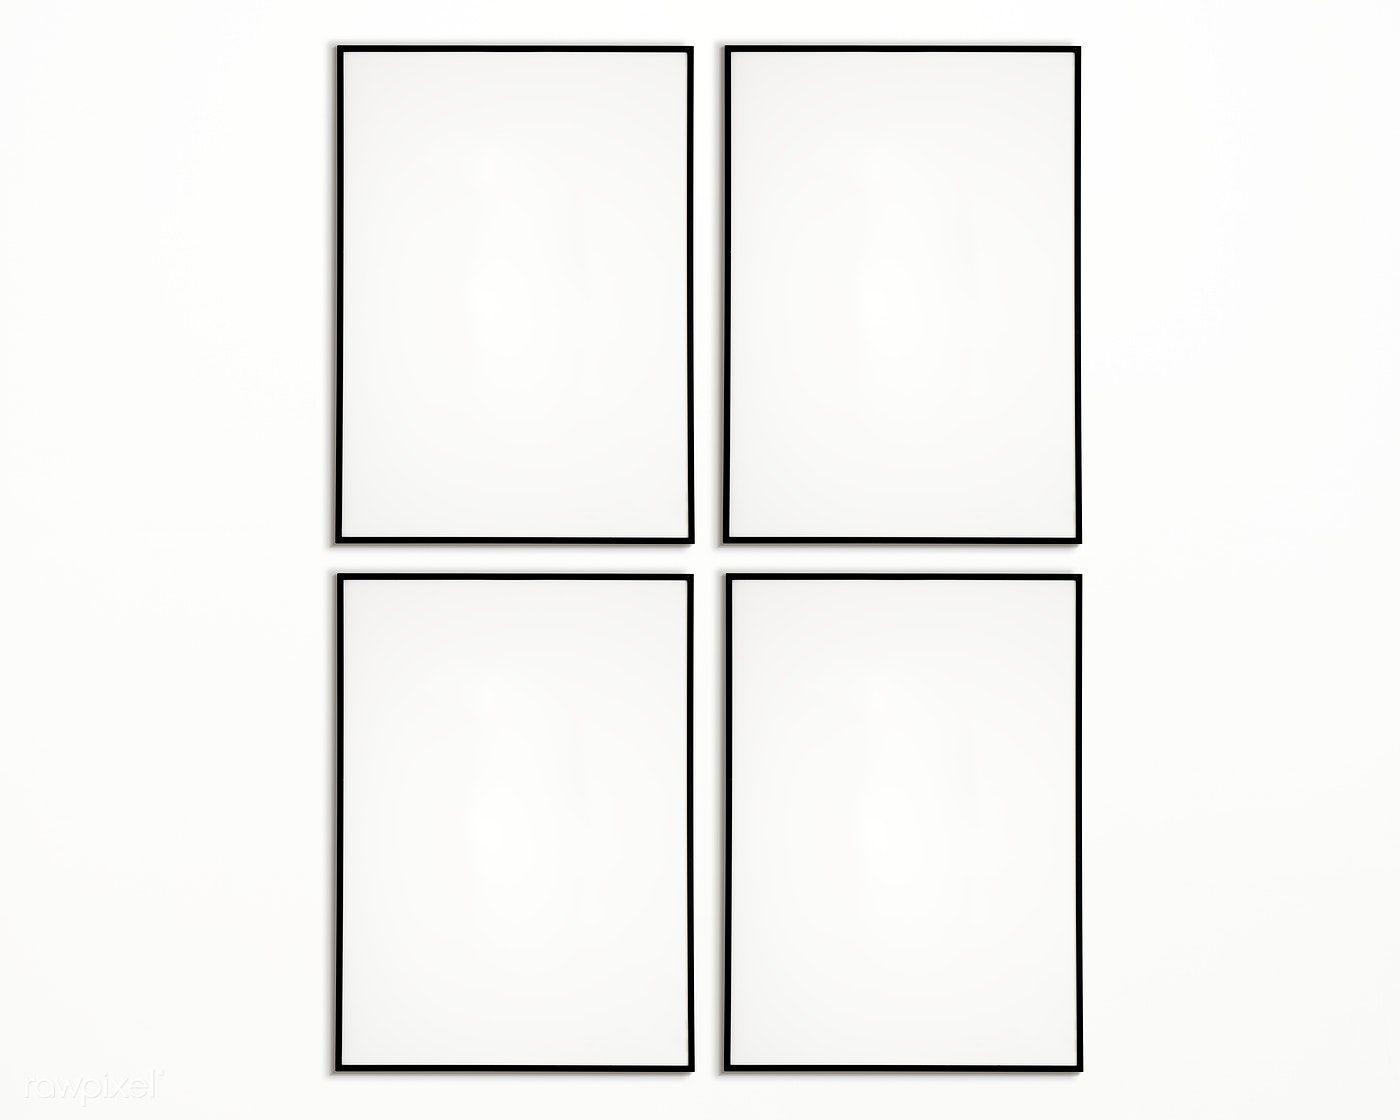 Download Premium Psd Of Four Photo Frames Isolated On White Wall 328123